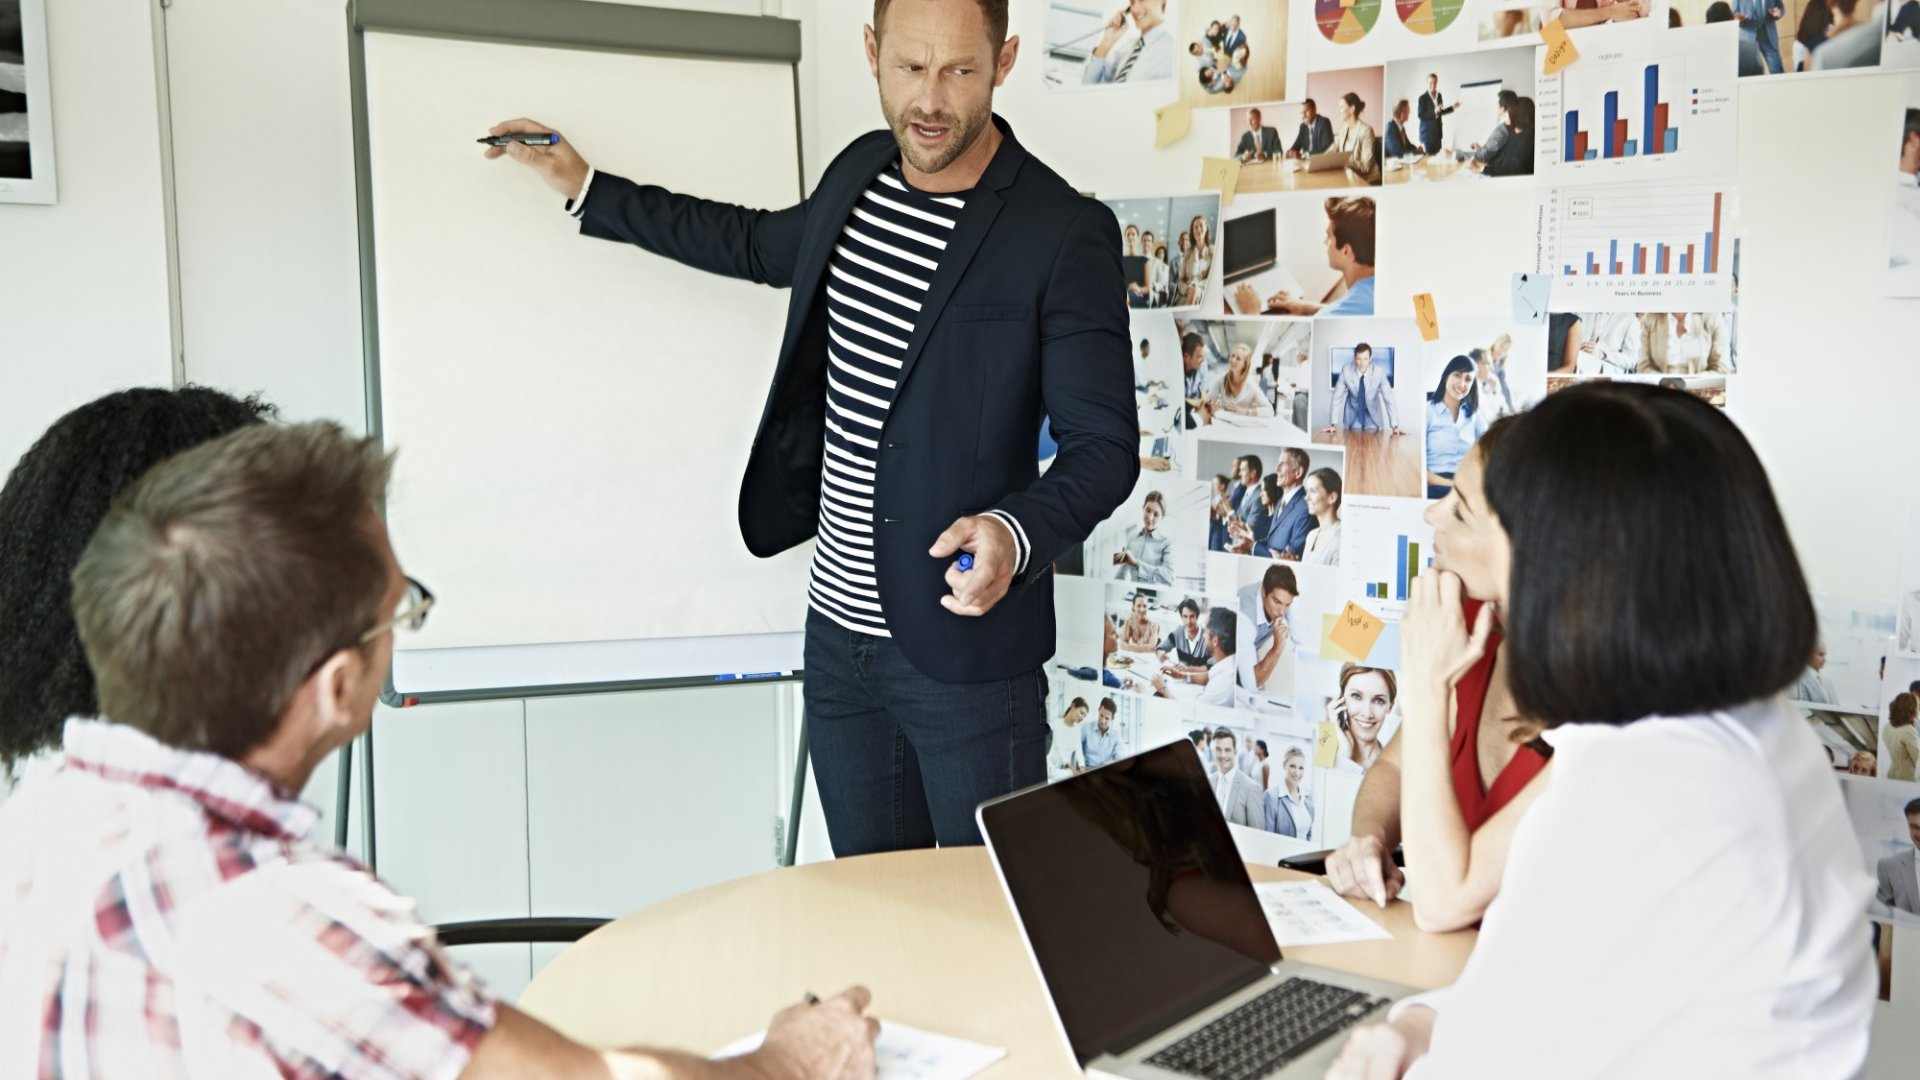 The 5 Best Ways to Influence Leaders